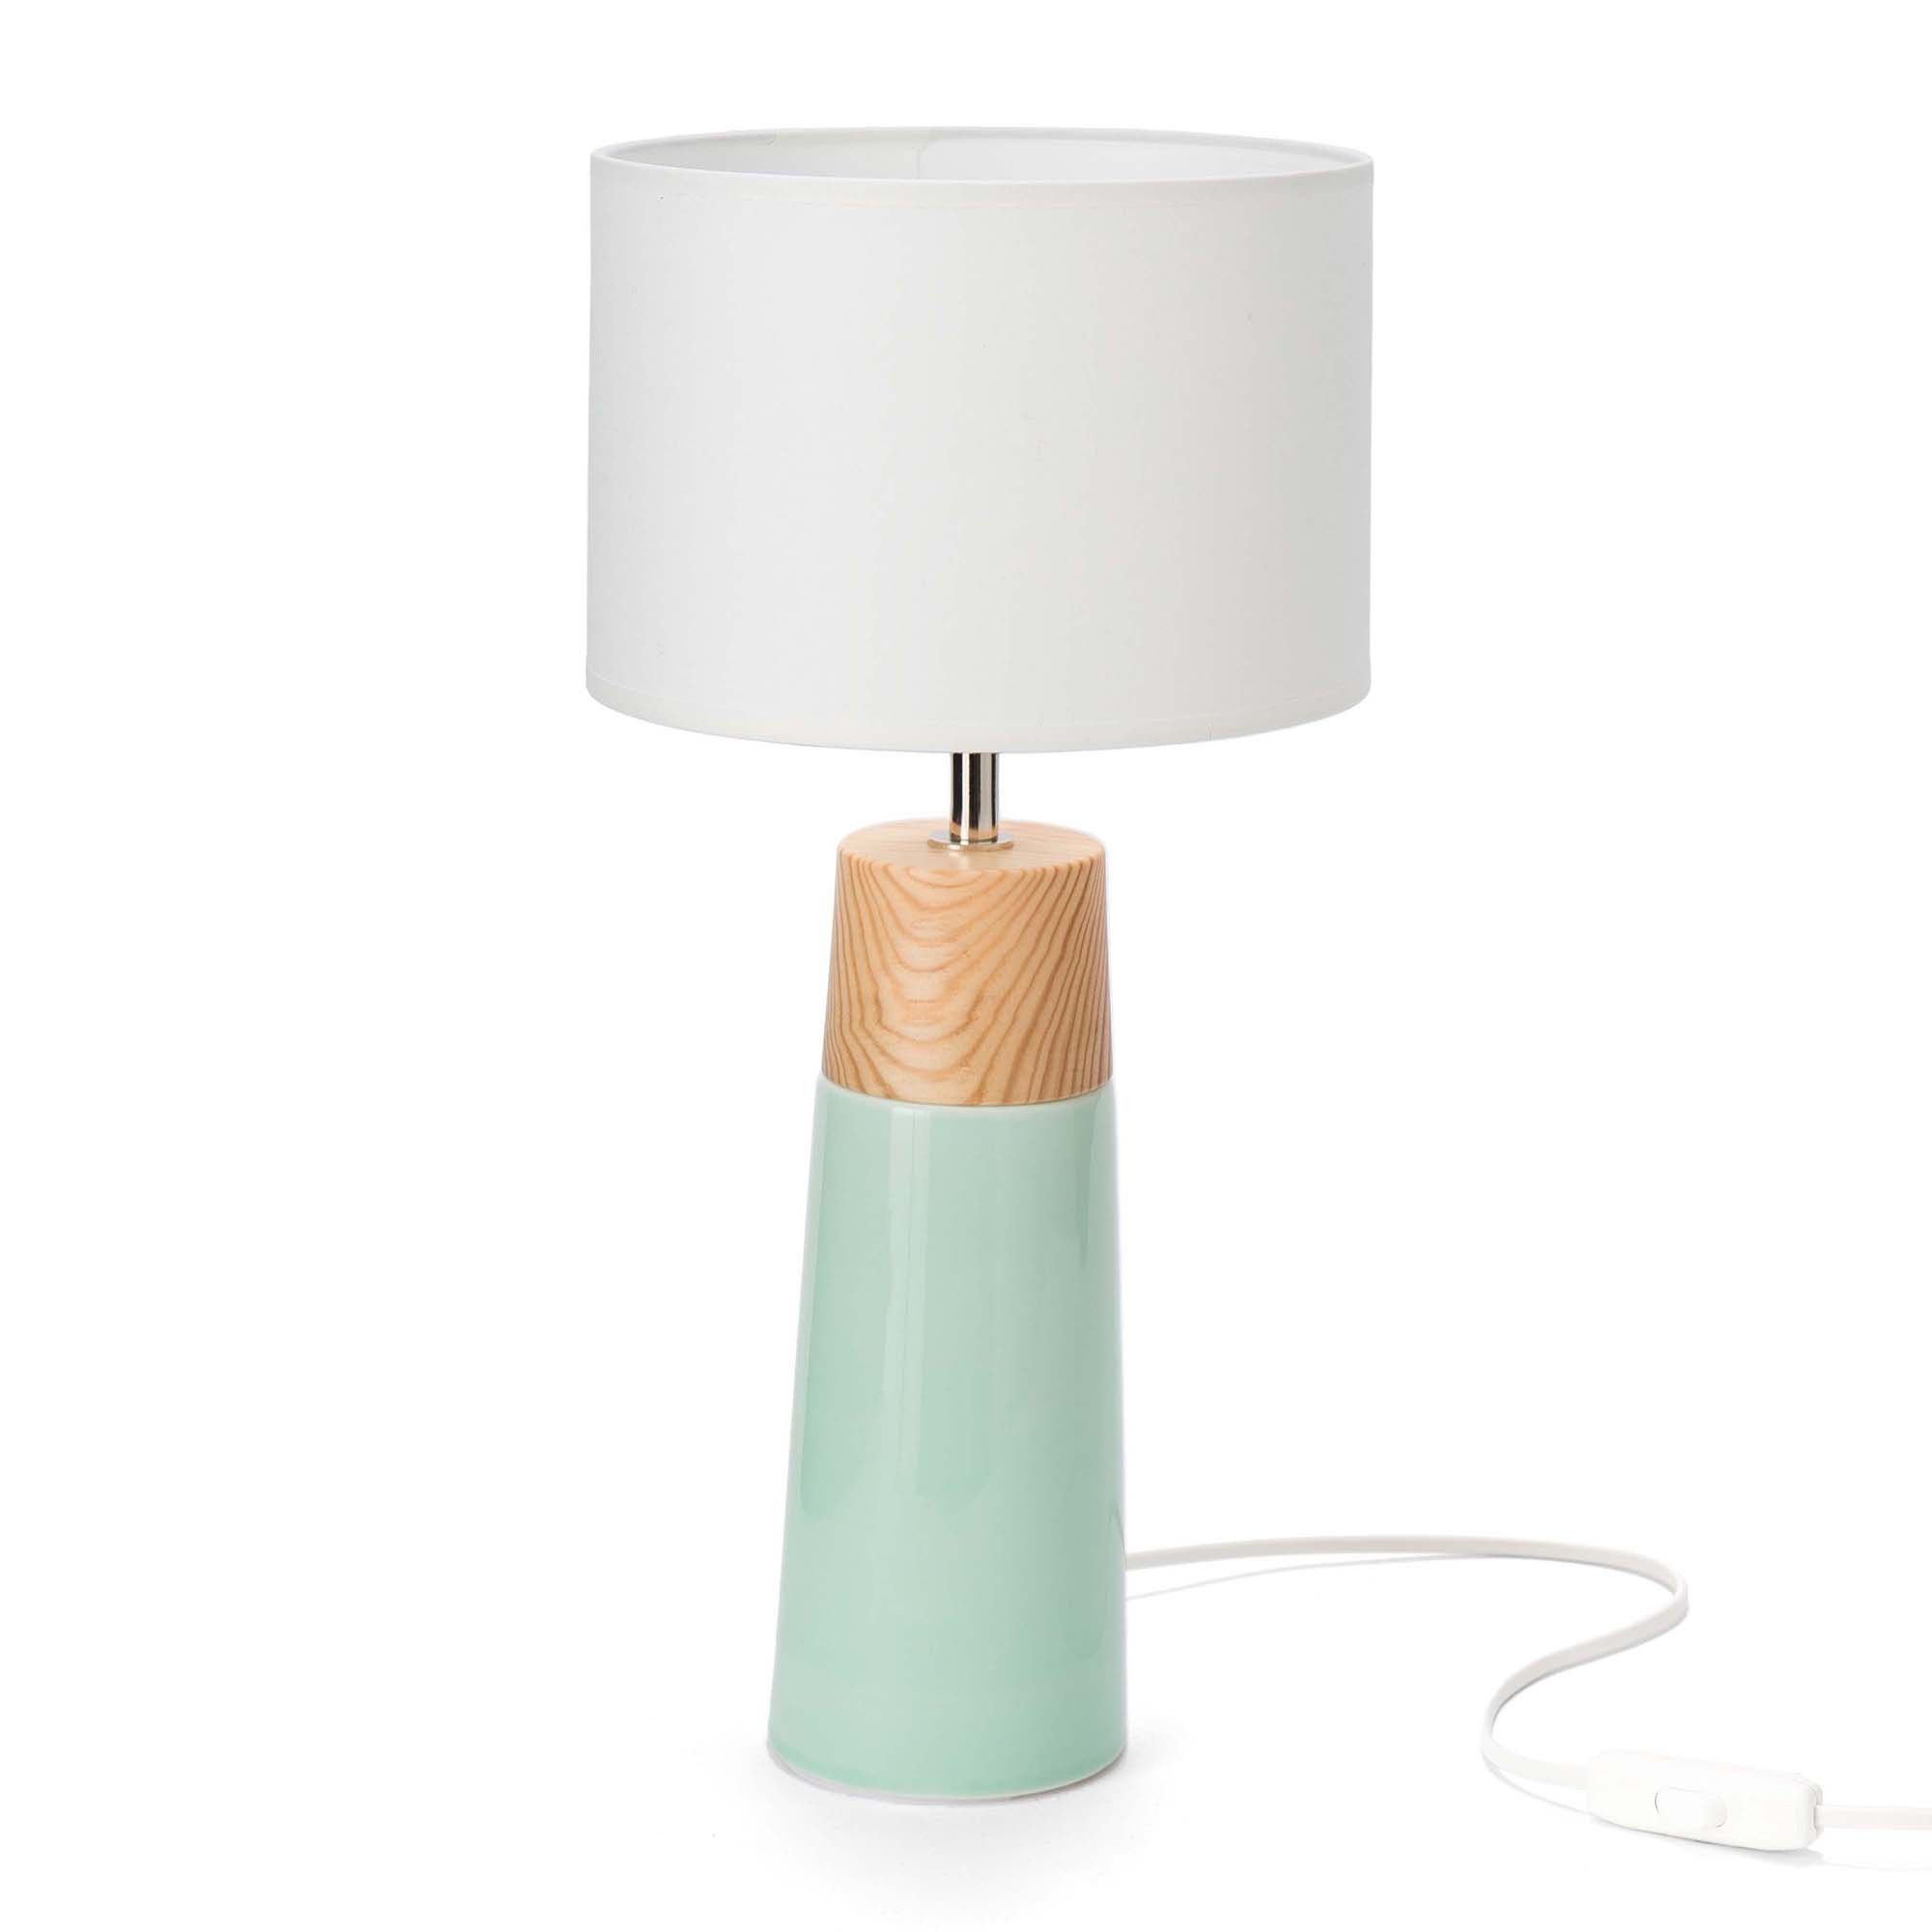 Areosa table lamp natural table lamps living room ideas and room areosa table lamp geotapseo Gallery